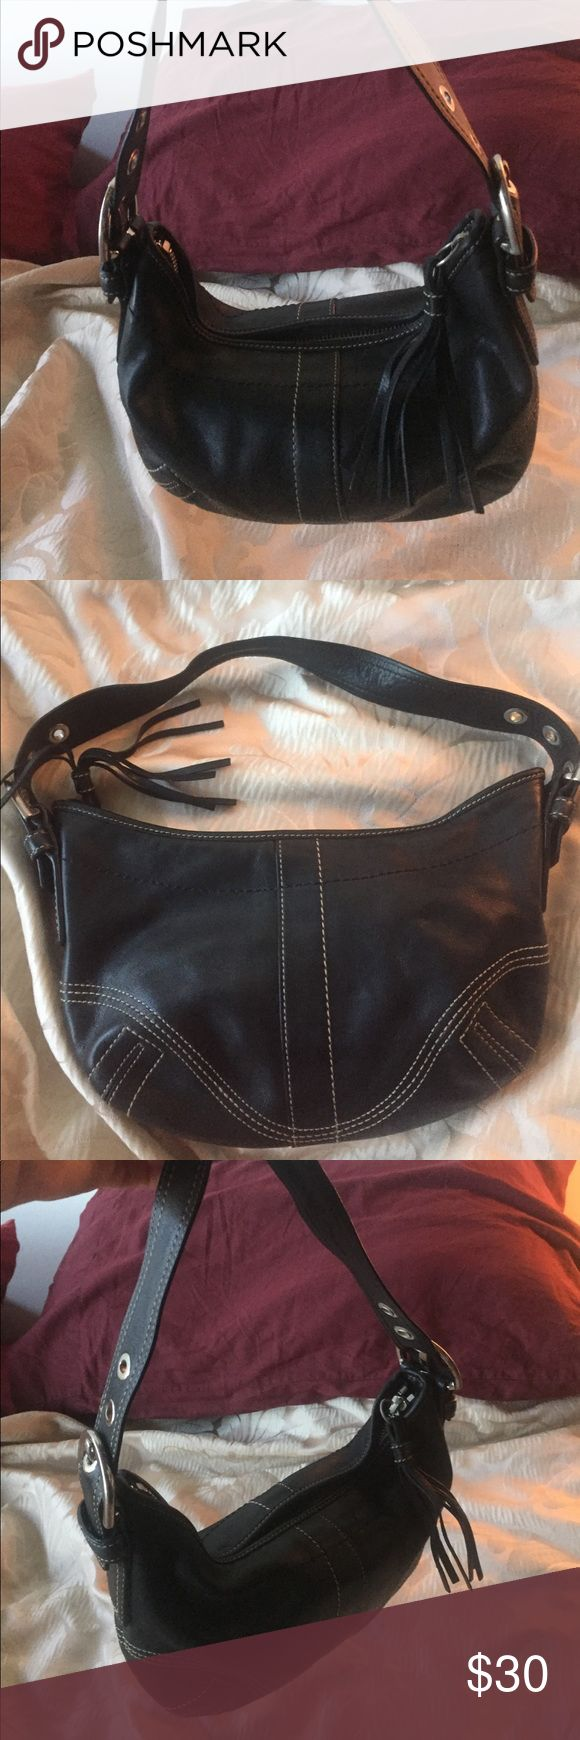 Black Coach Shoulder Bag Authentic black Coach purse. It's small, and fits right over the shoulder. The leather is still in great condition, and there are no tears or worn down patches. There is some where on the metal buckles (as shown in the pictures). Coach Bags Shoulder Bags